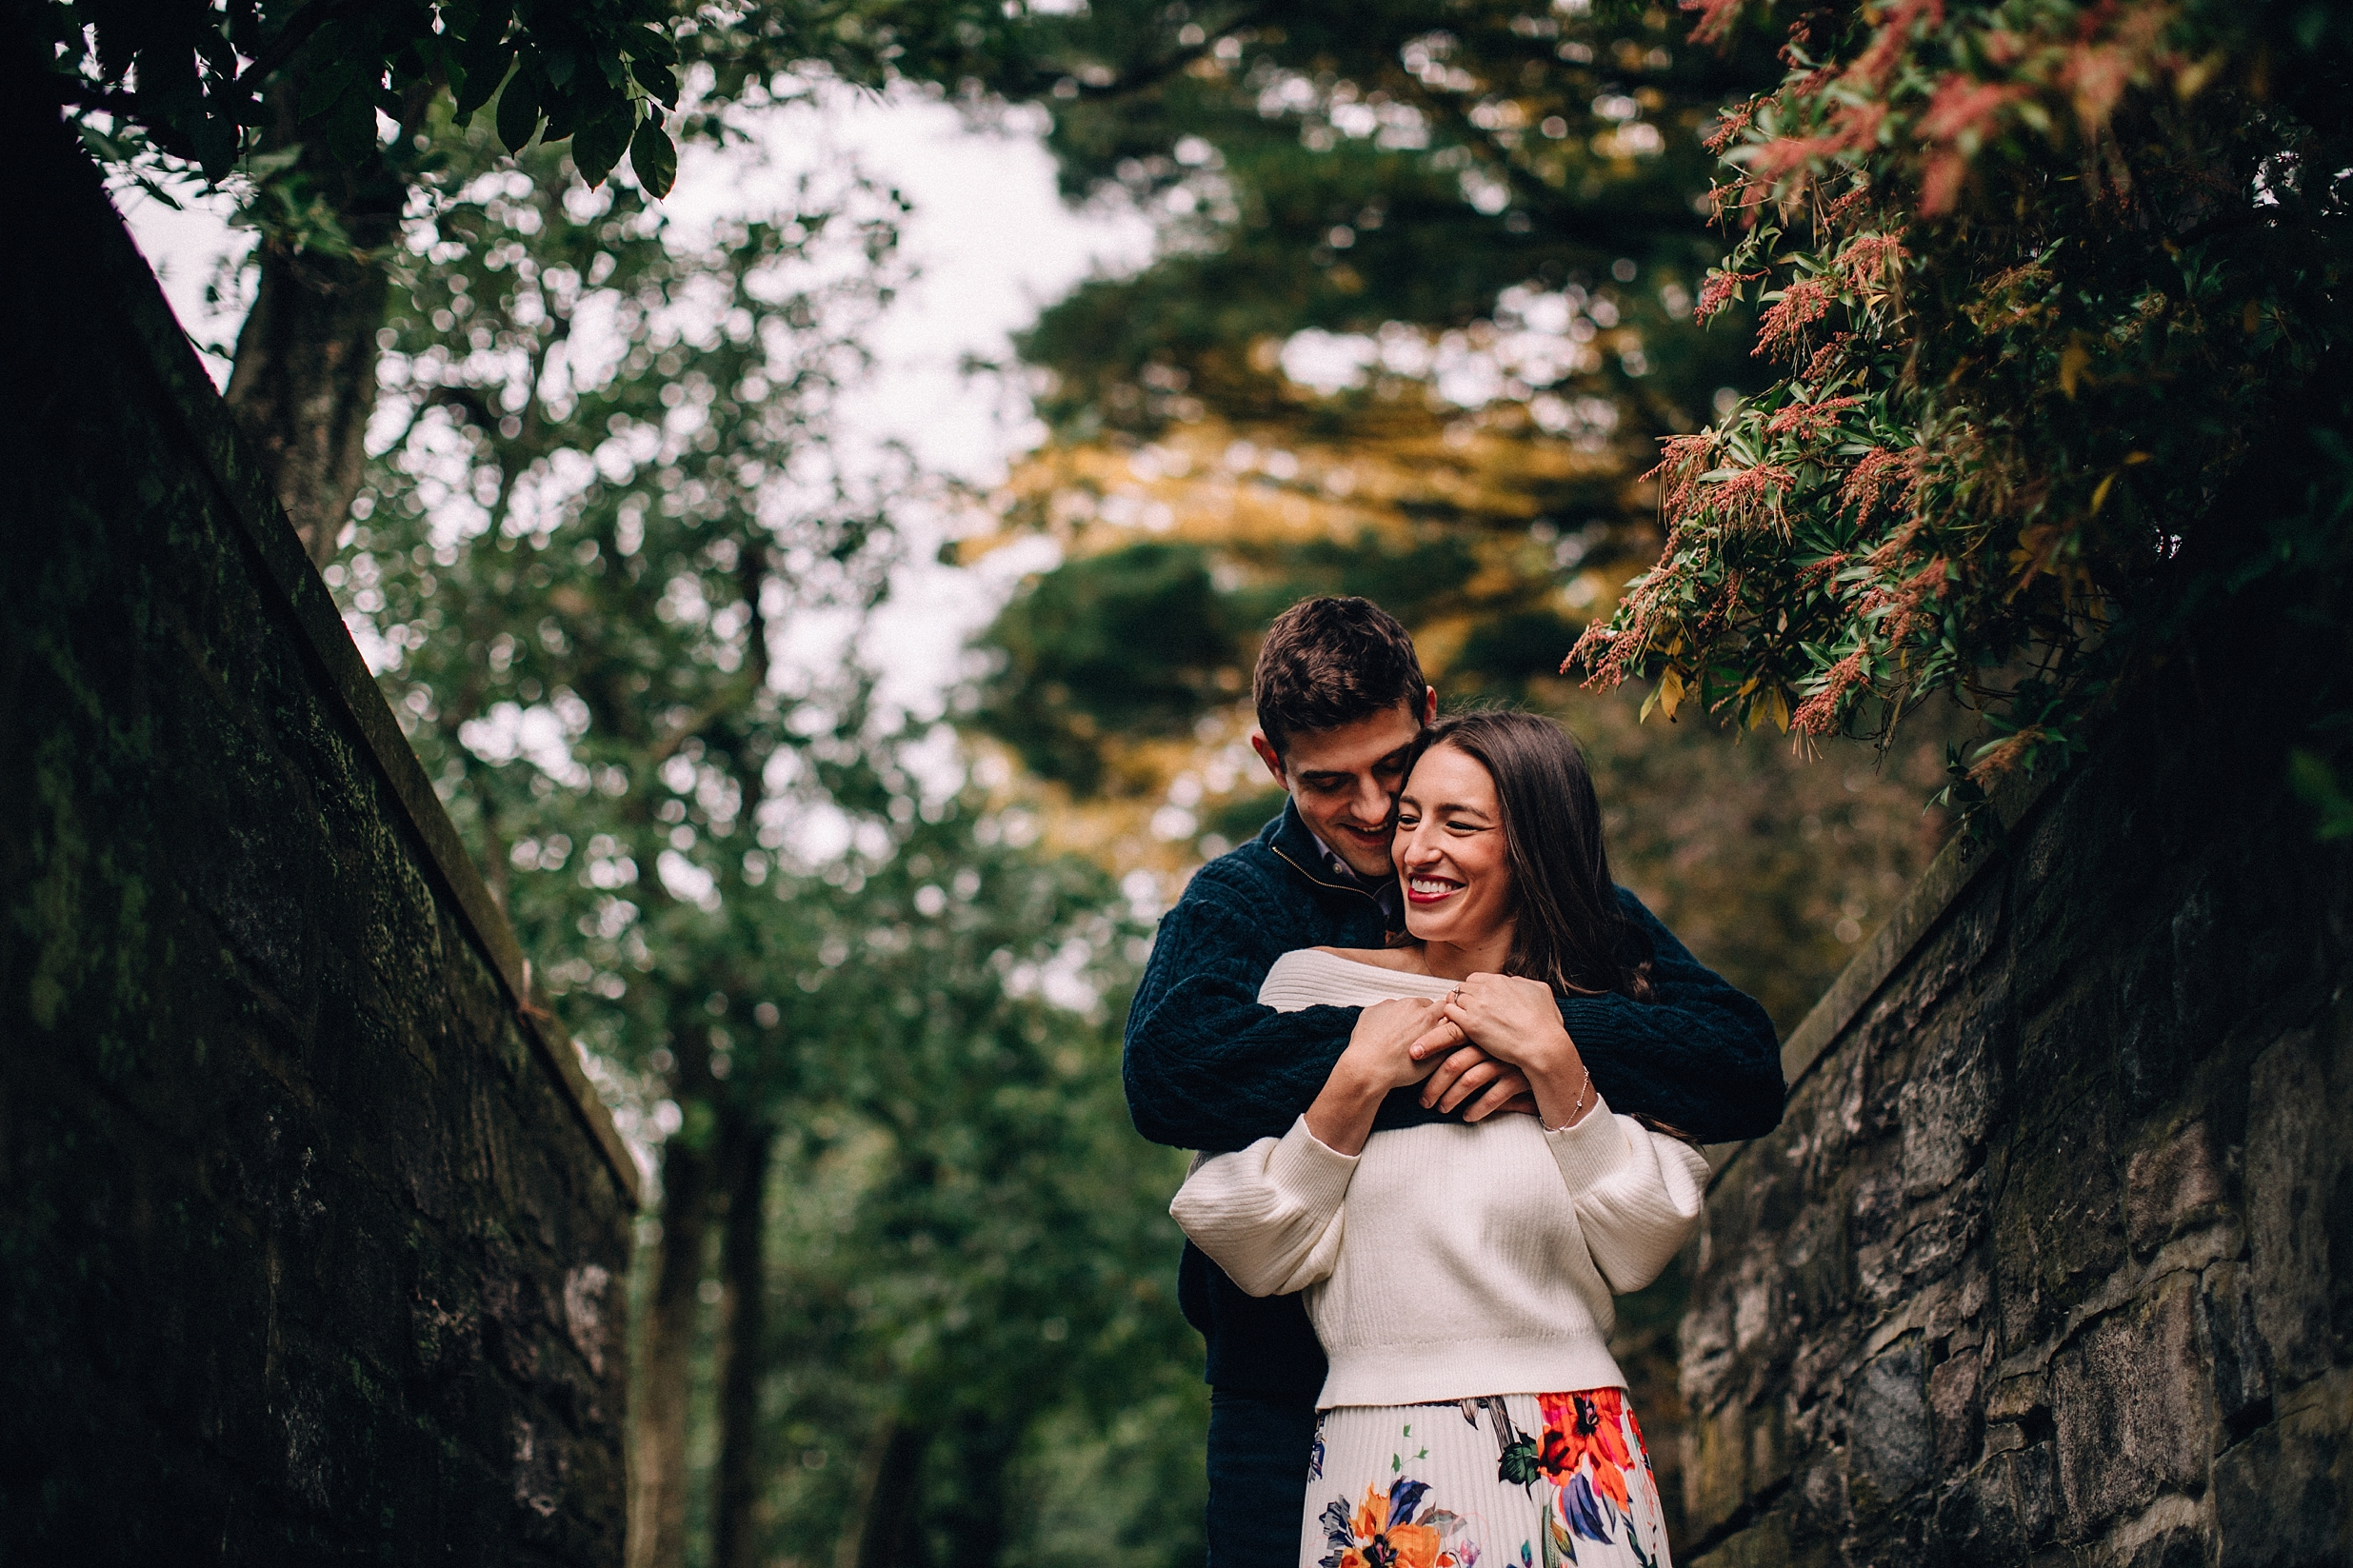 castle-fall-engagement-session-north-jersey-photographer_0009.jpg